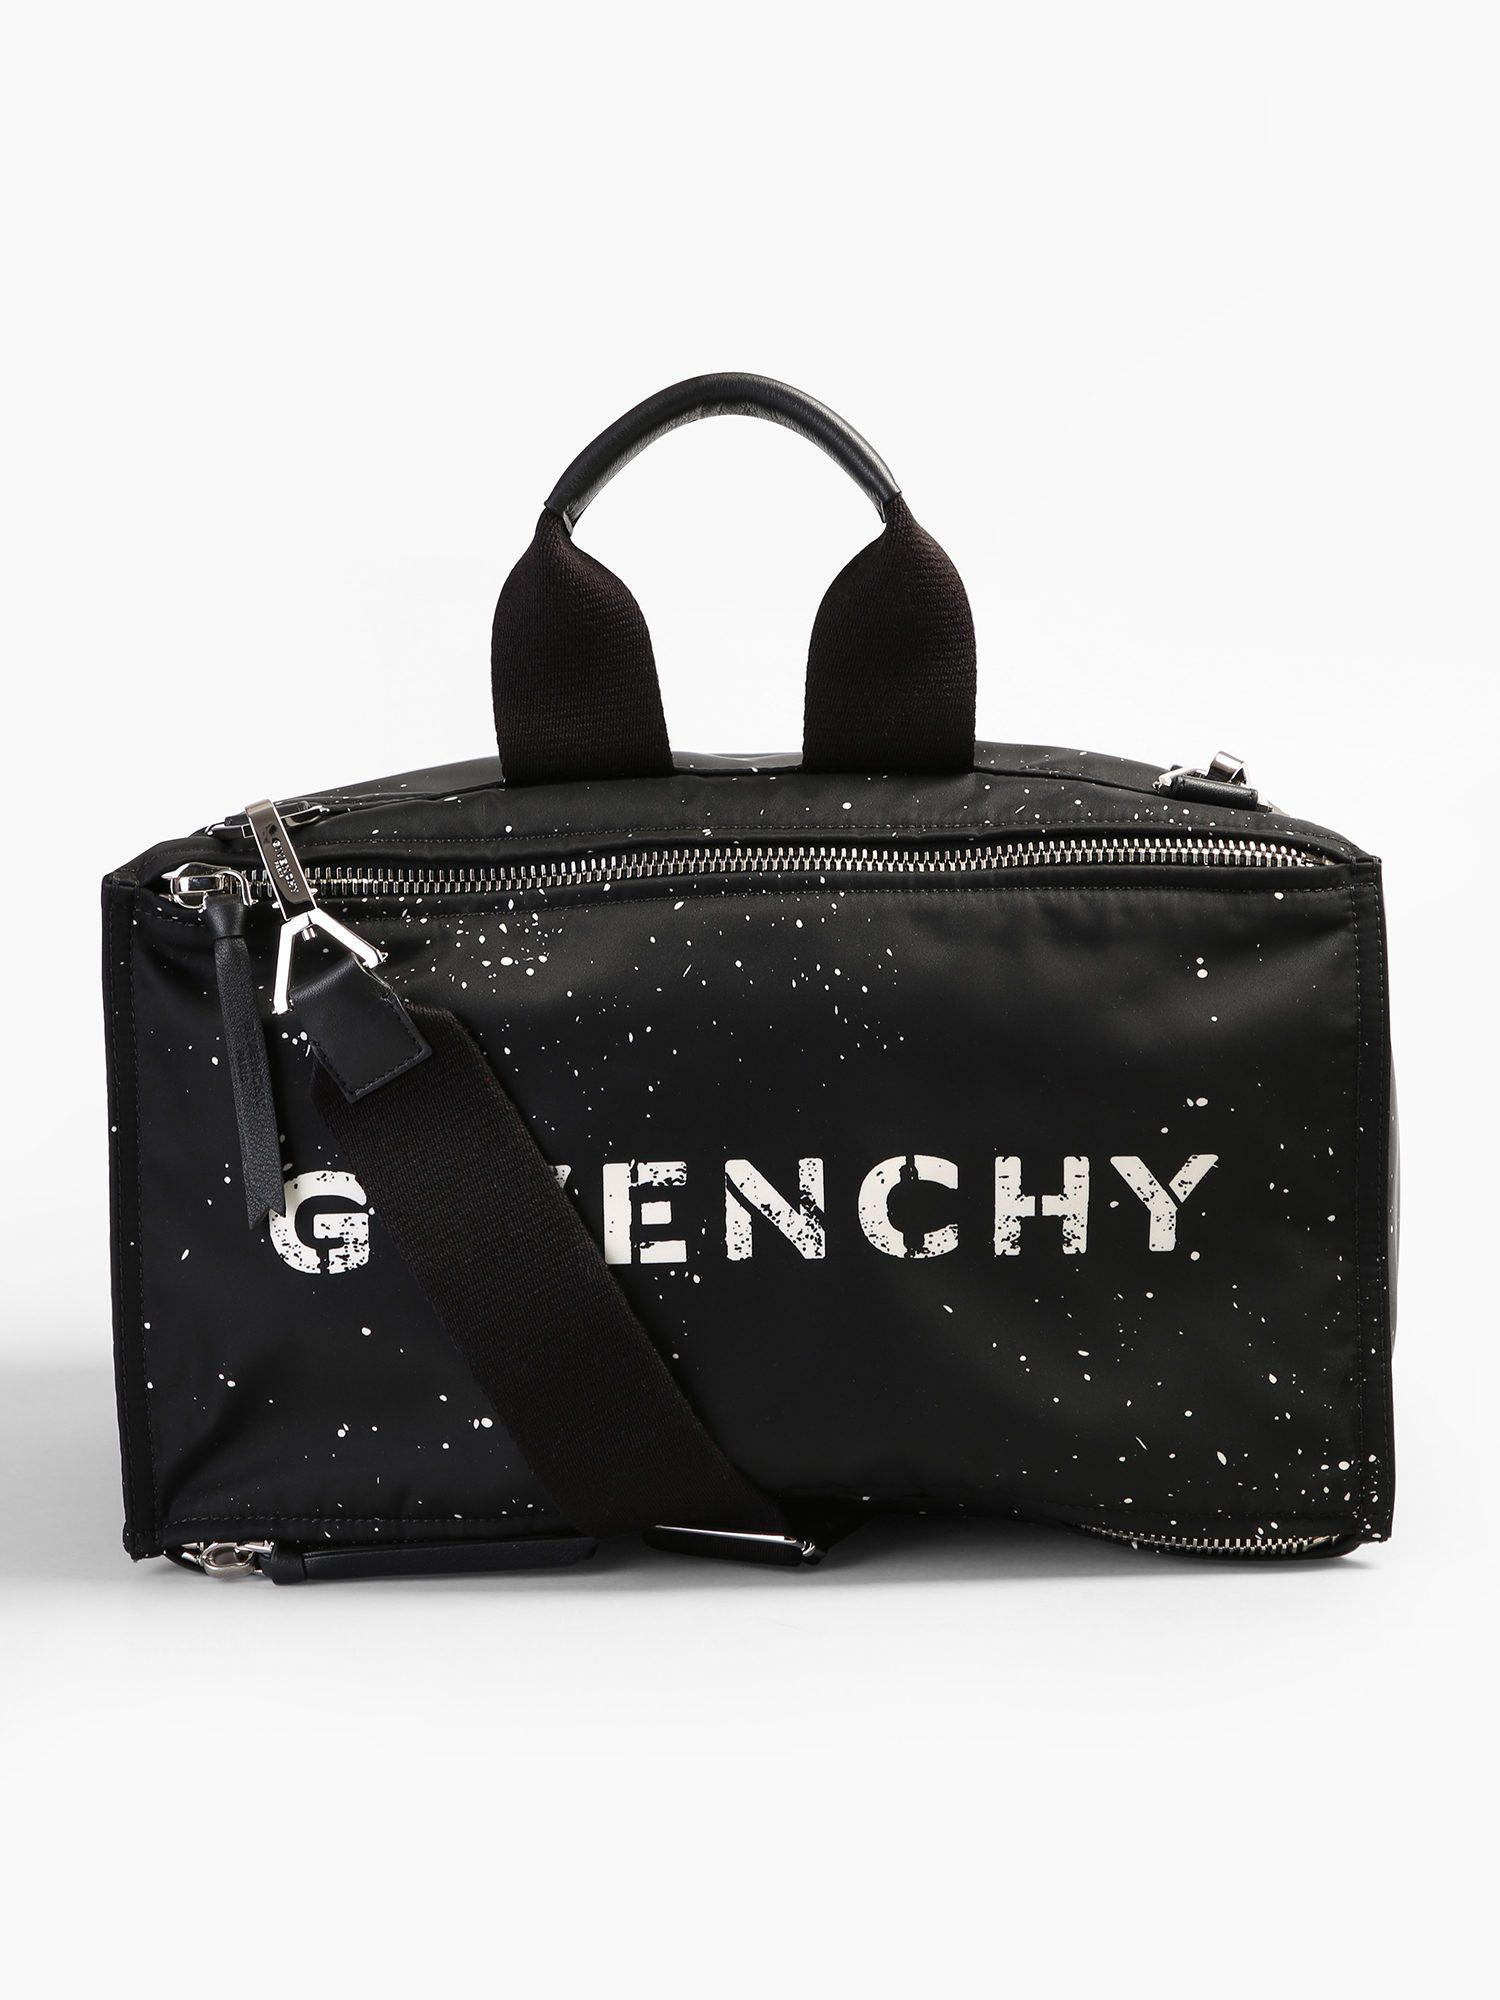 9175ff8a51f1 Givenchy Pandora Nylon Bag in Black for Men - Save 31% - Lyst